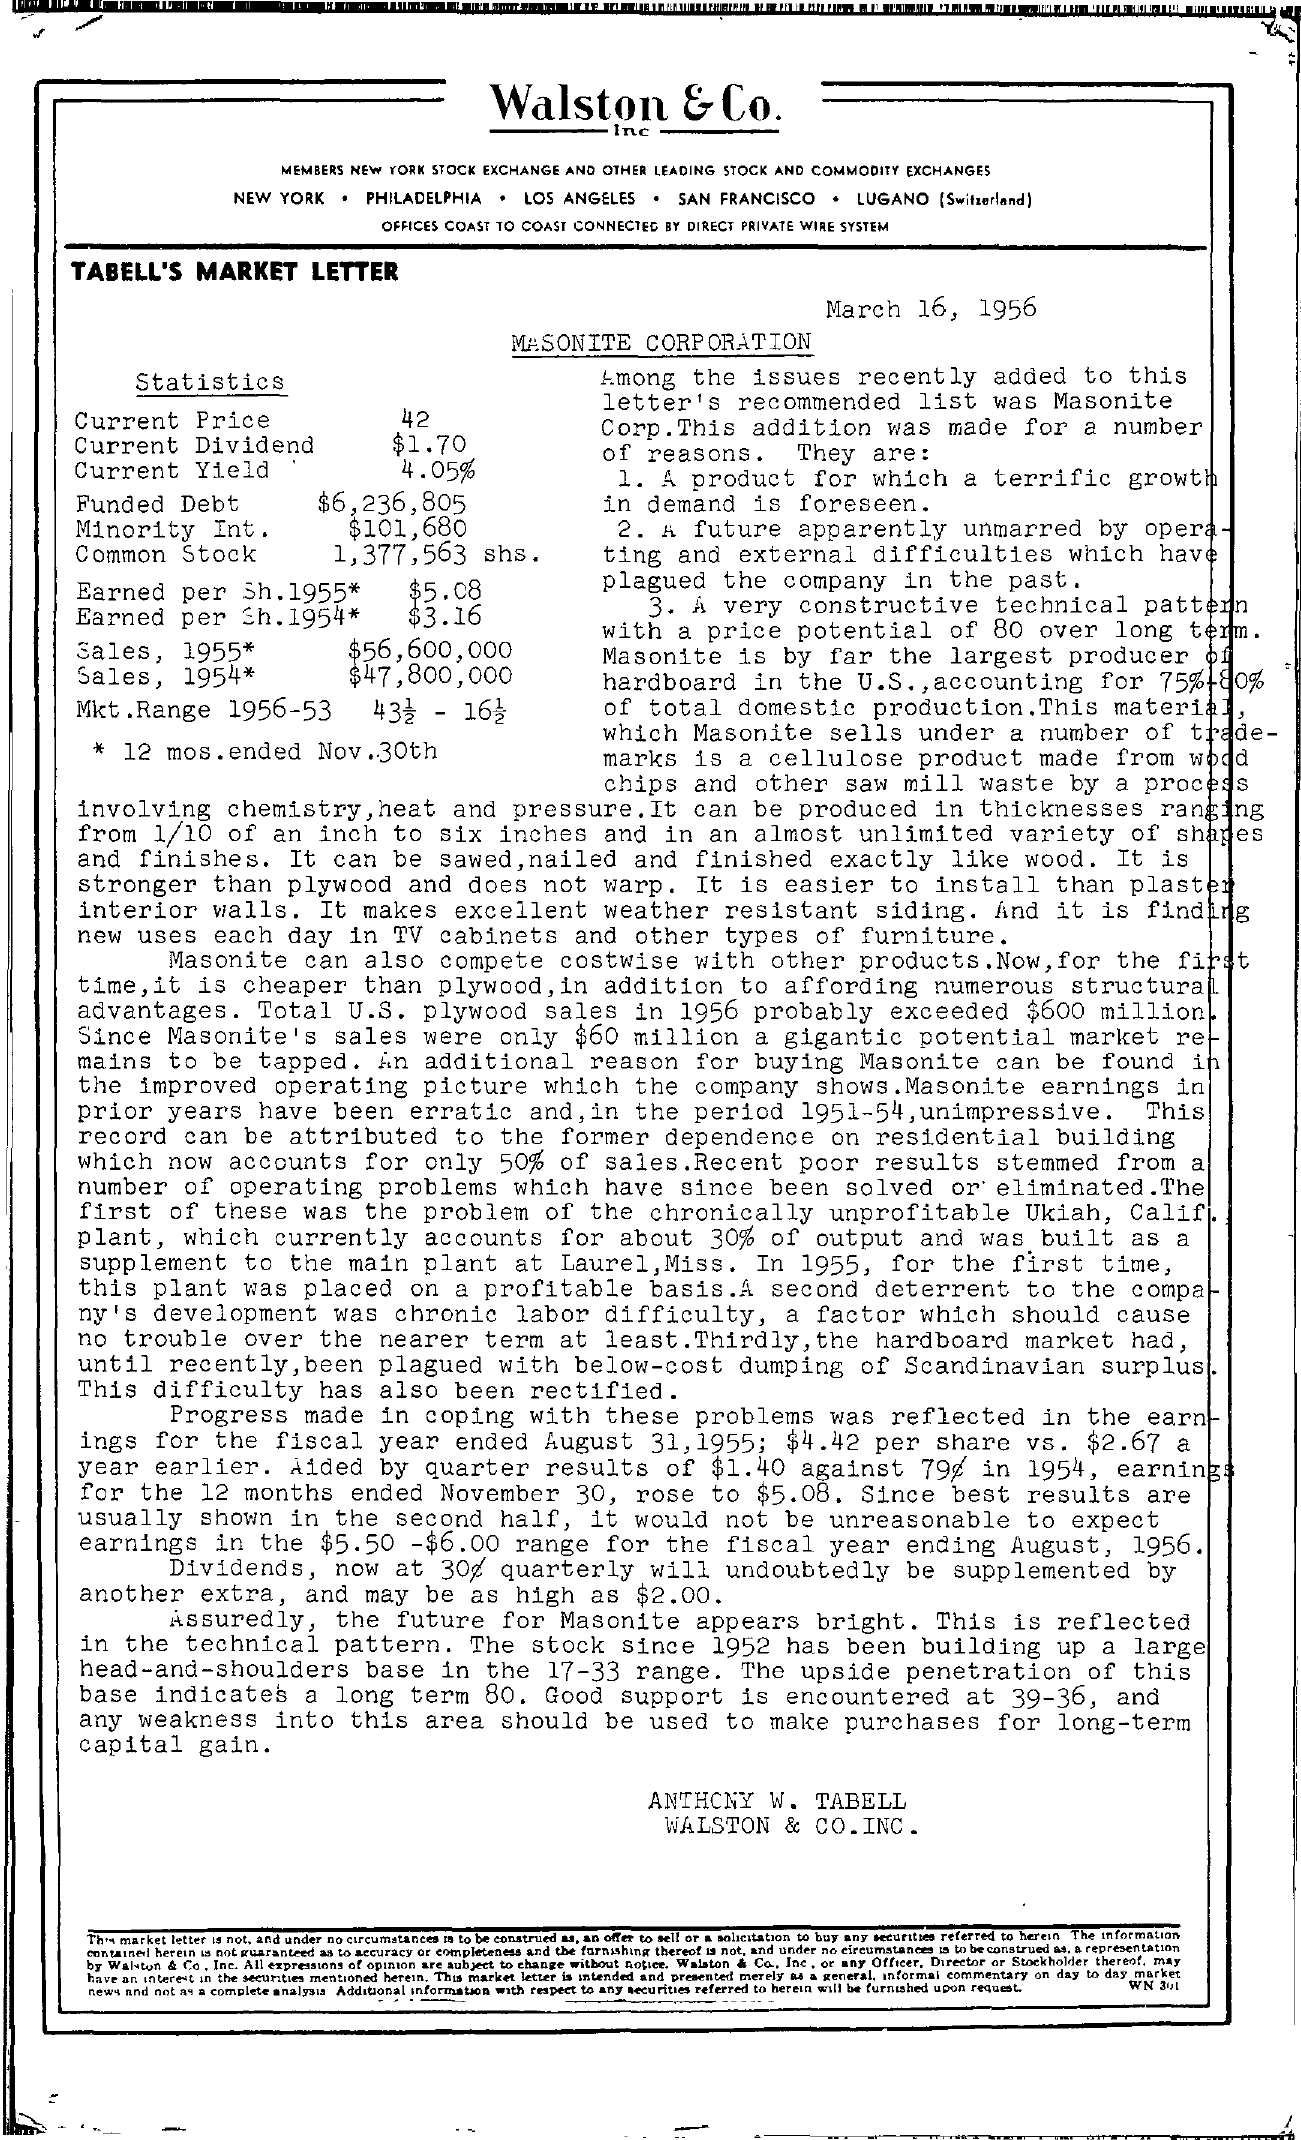 Tabell's Market Letter - March 16, 1956